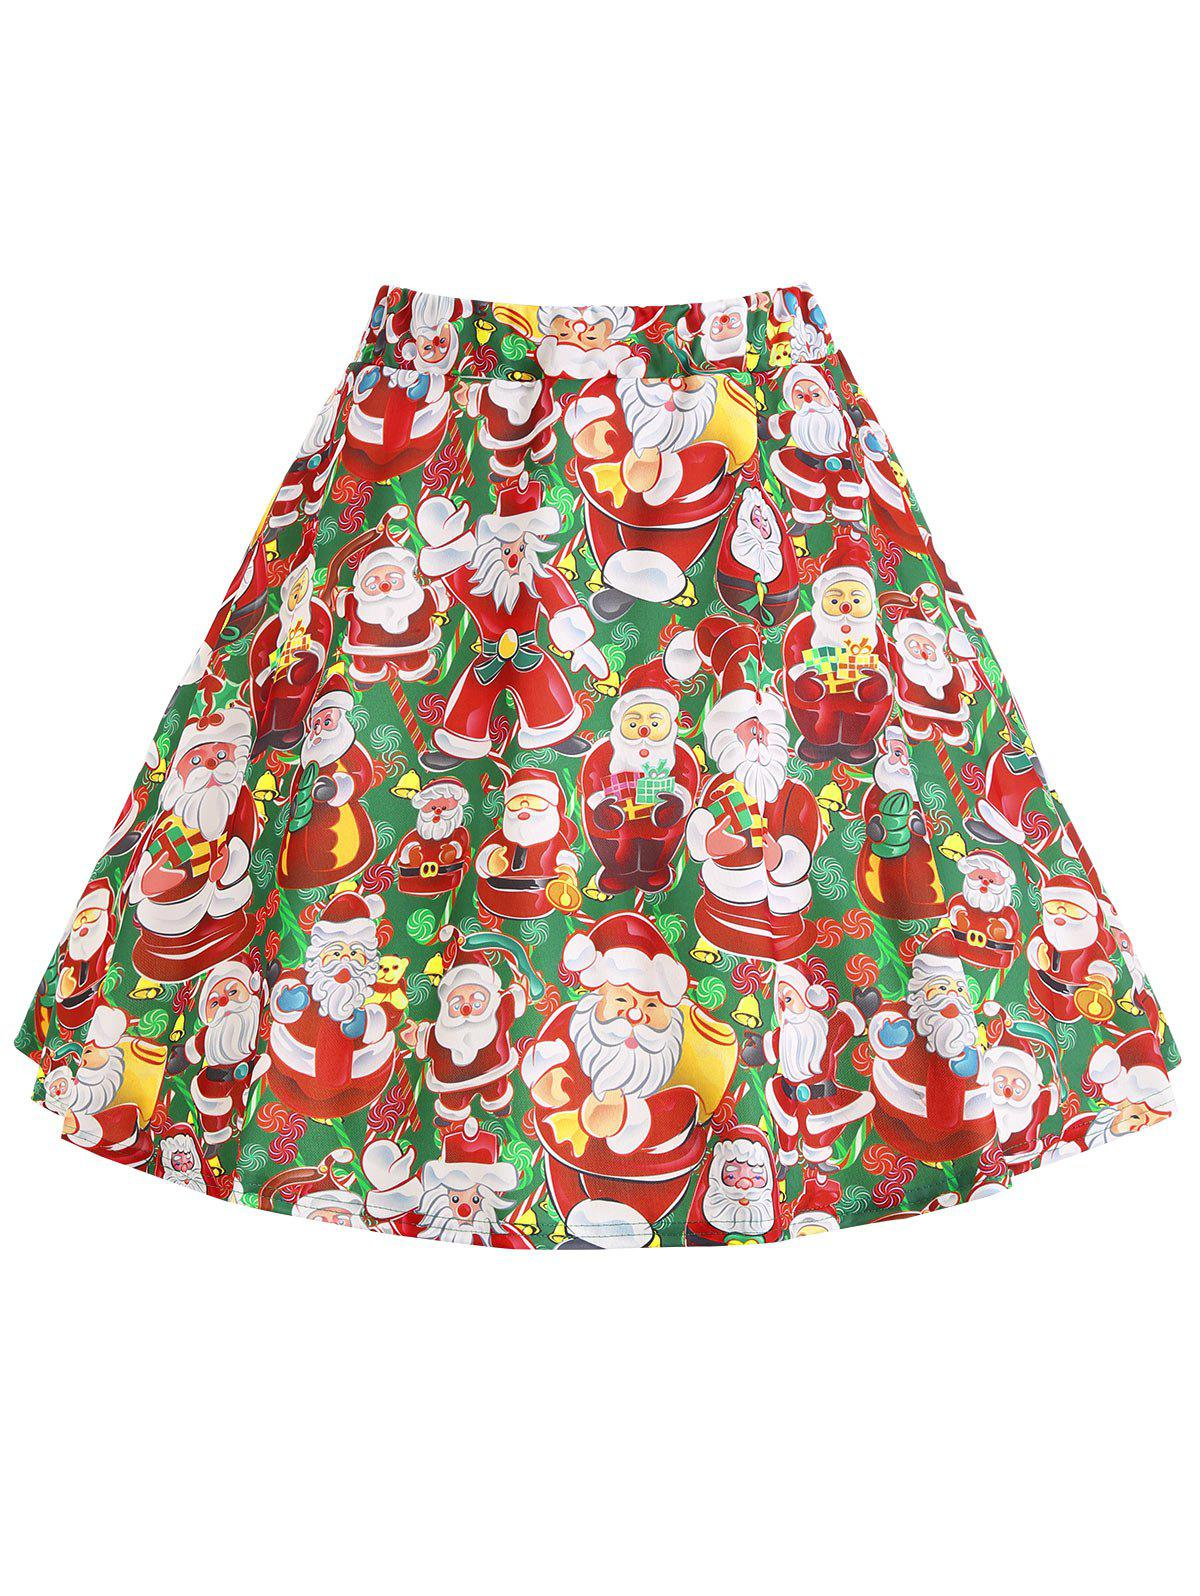 Christmas Santa Claus Print Plus Size SkirtWOMEN<br><br>Size: XL; Color: RED AND GREEN; Material: Polyester; Length: Mini; Silhouette: A-Line; Pattern Type: Print; Season: Winter; With Belt: No; Weight: 0.2600kg; Package Contents: 1 x Skirt;